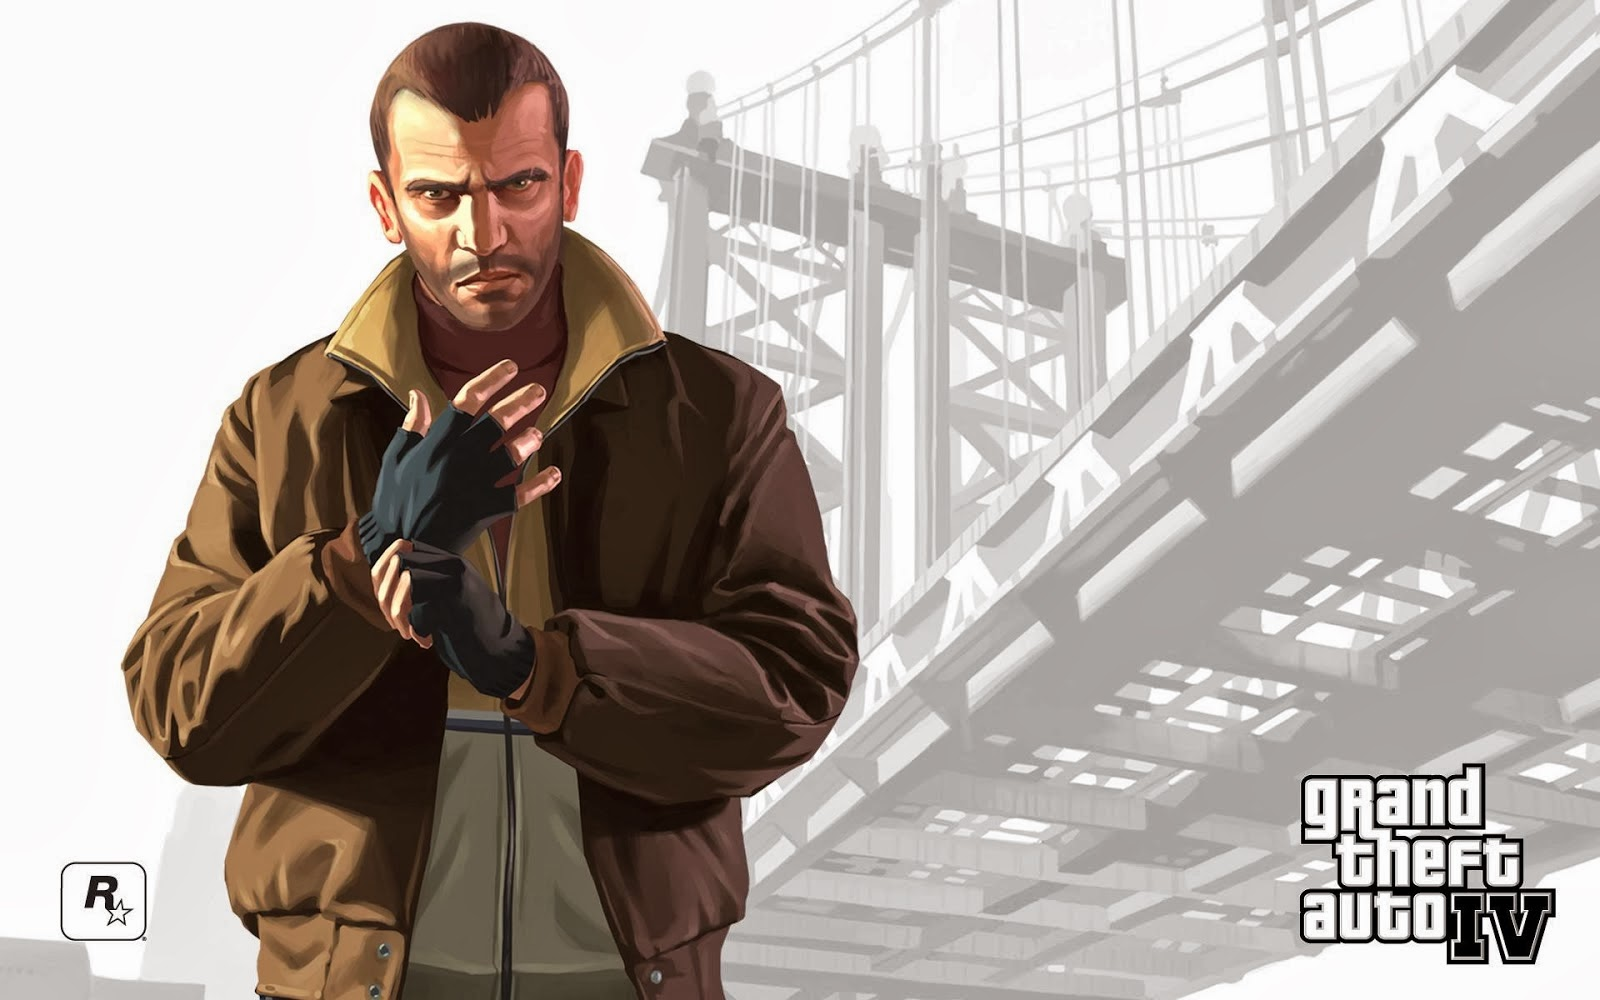 game grand theft auto pictures grand theft auto photos grand theft 1600x1000